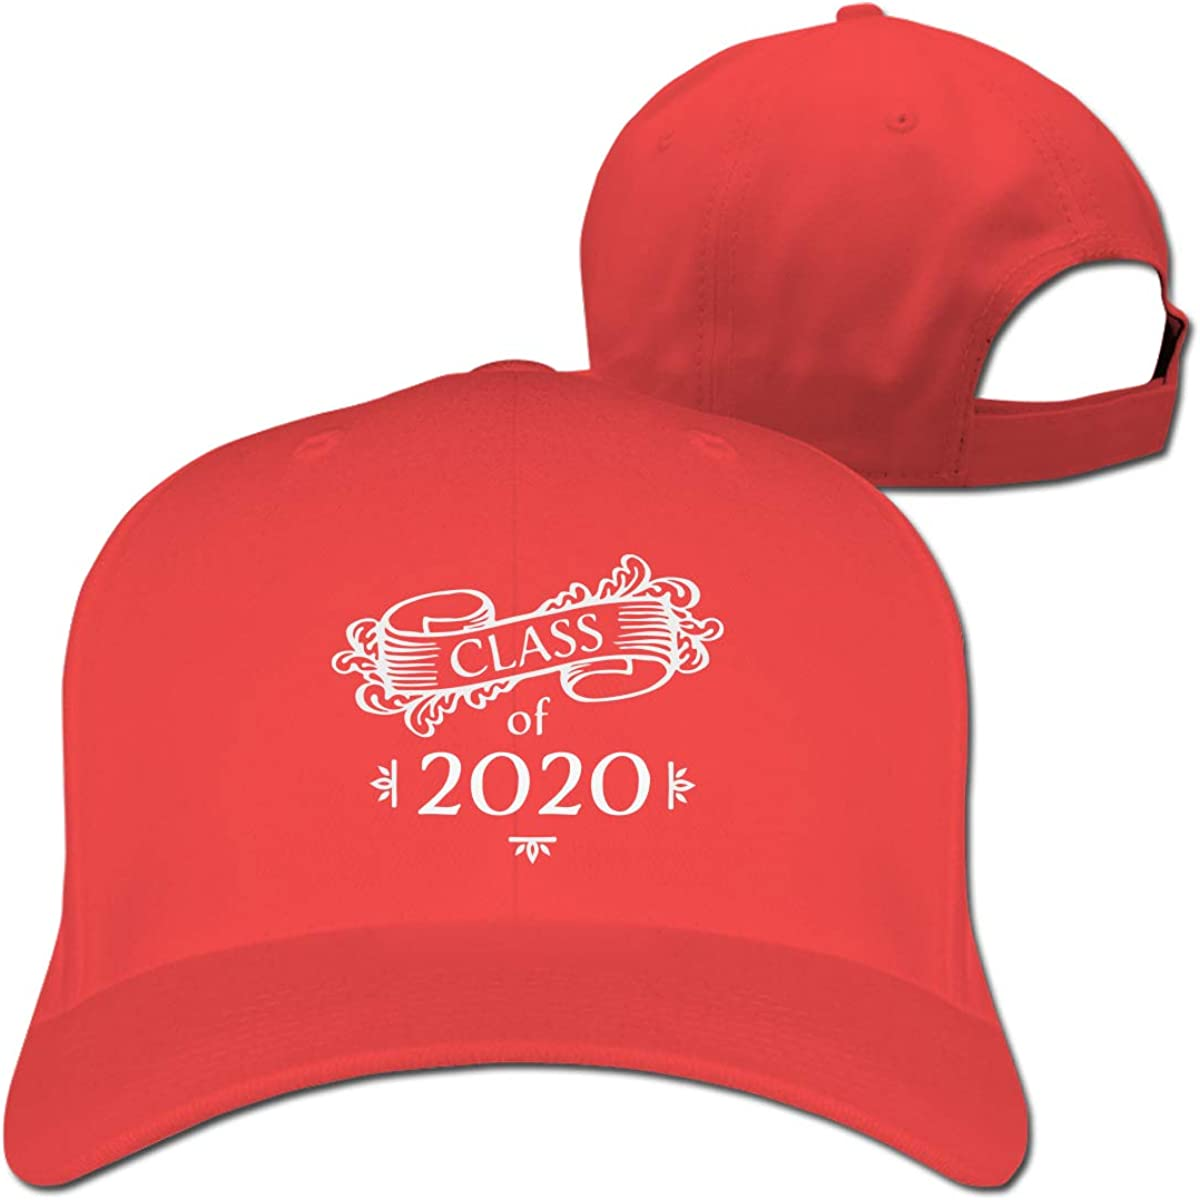 Class of 2020 Senior Year Graduation Unisex Pure Color Baseball Cap Classic Adjustable Visor Hat